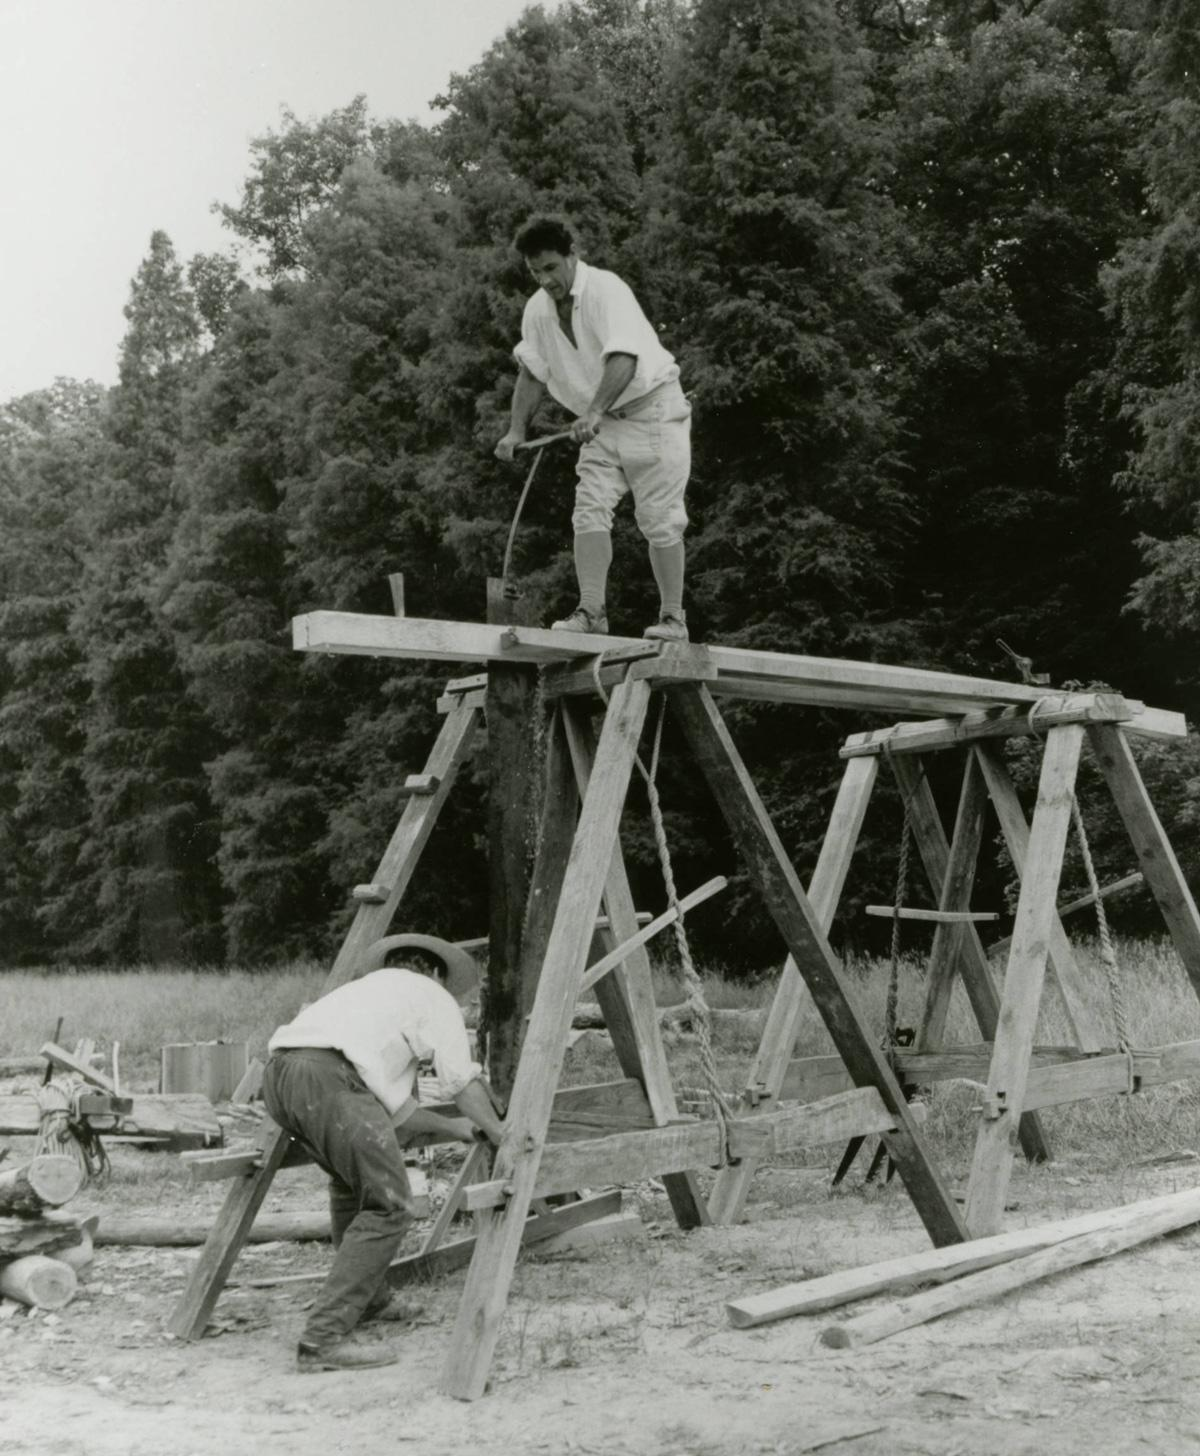 Pit sawing a framing member using colonial tools and techniques for reconstruction of the 16-sided treading barn in 1996.